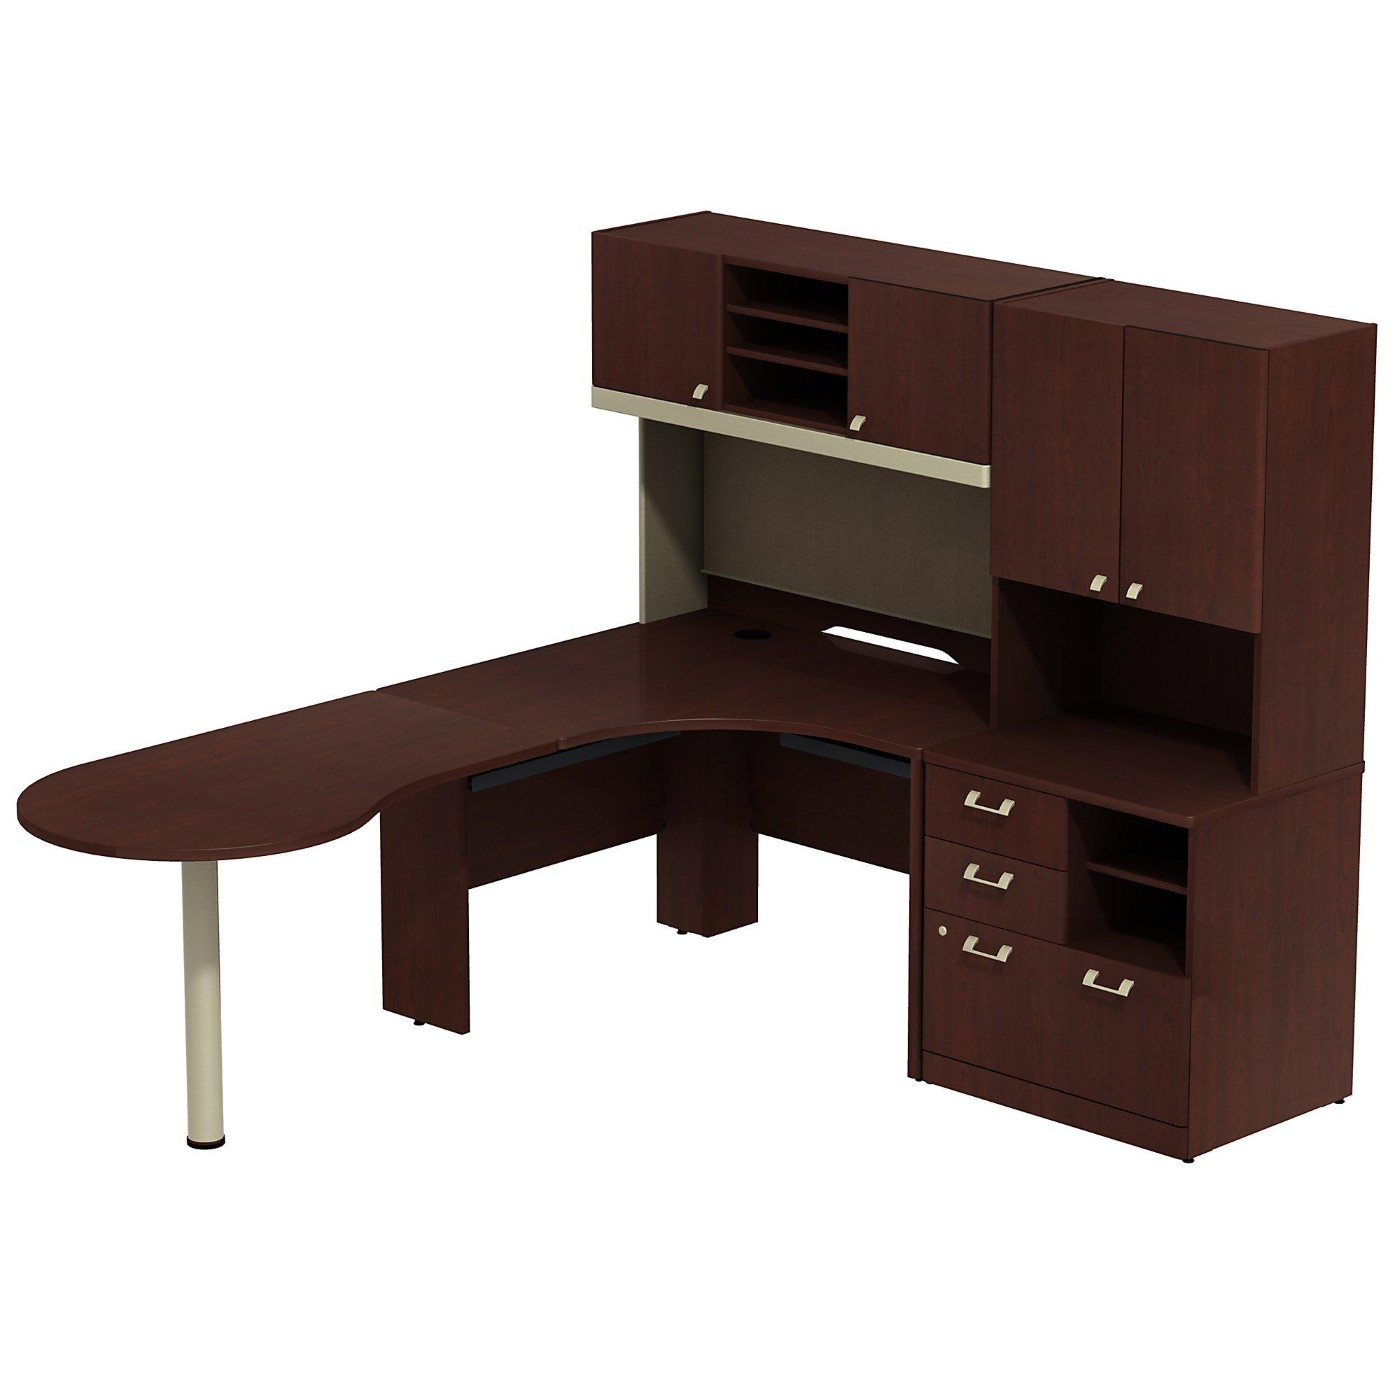 <font color=#c60><b>BUSH BUSINESS FURNITURE QUANTUM RIGHT HANDED PENINSULA L SHAPED DESK WITH 48W HUTCH AND 30W STORAGE CABINET WITH 30W HUTCH. FREE SHIPPING</font></b></font></b>